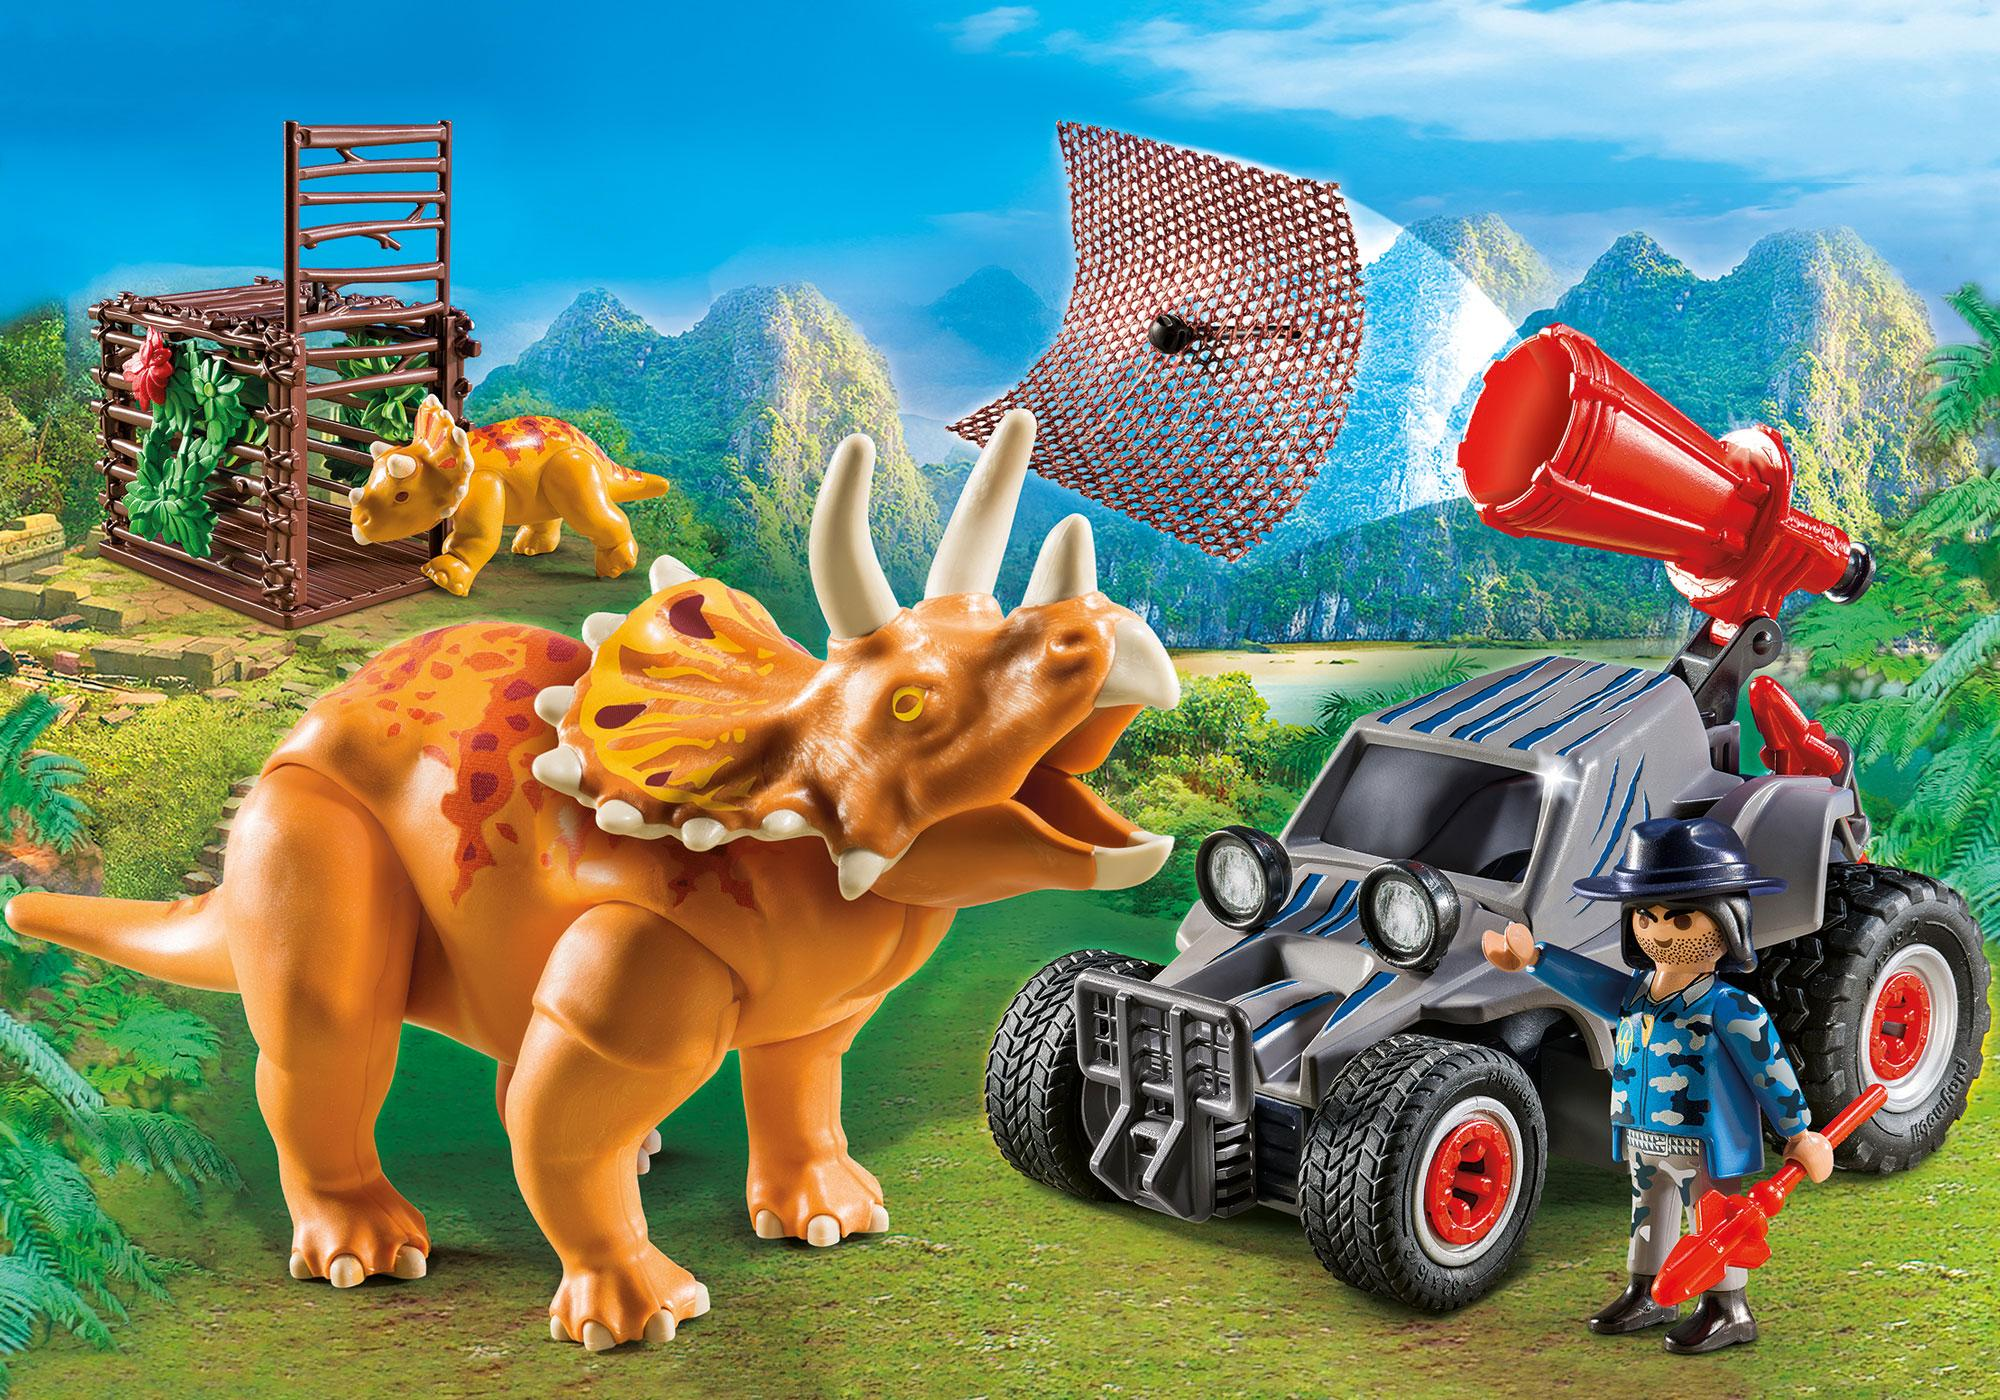 http://media.playmobil.com/i/playmobil/9434_product_detail/Offroad buggy met dinovangnet